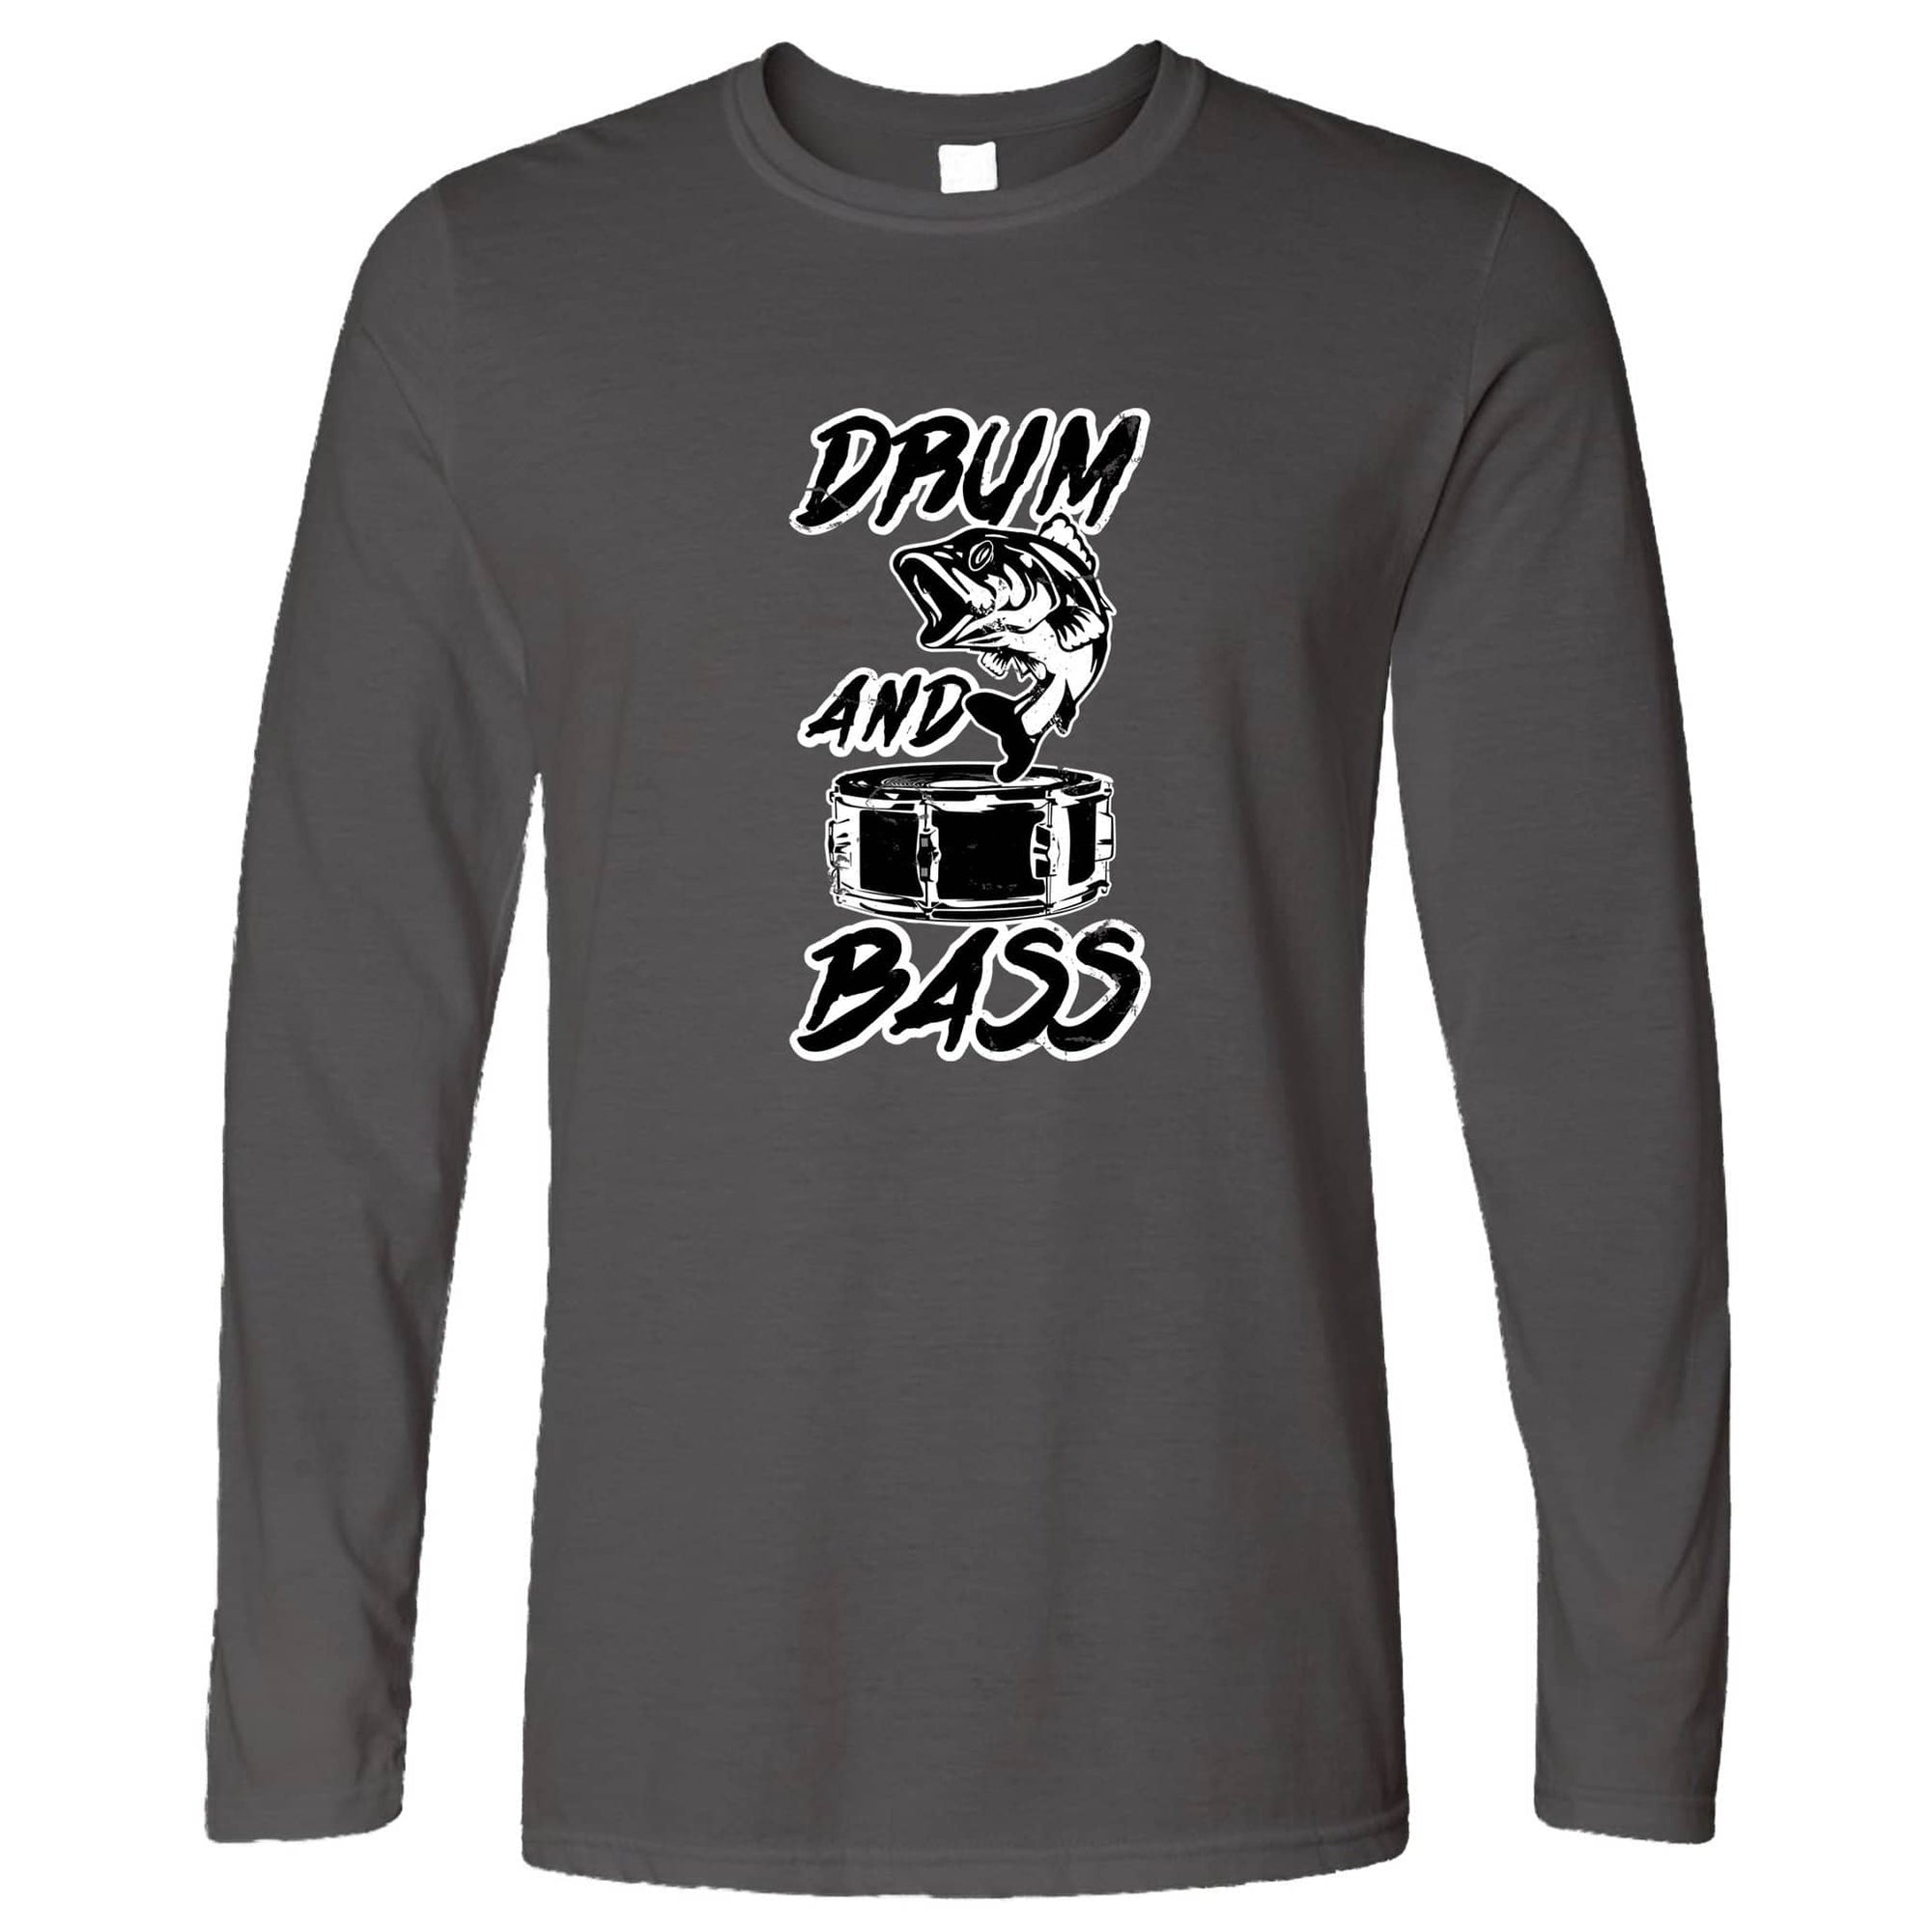 Funny Music Long Sleeve Drum And Bass Fish Slogan